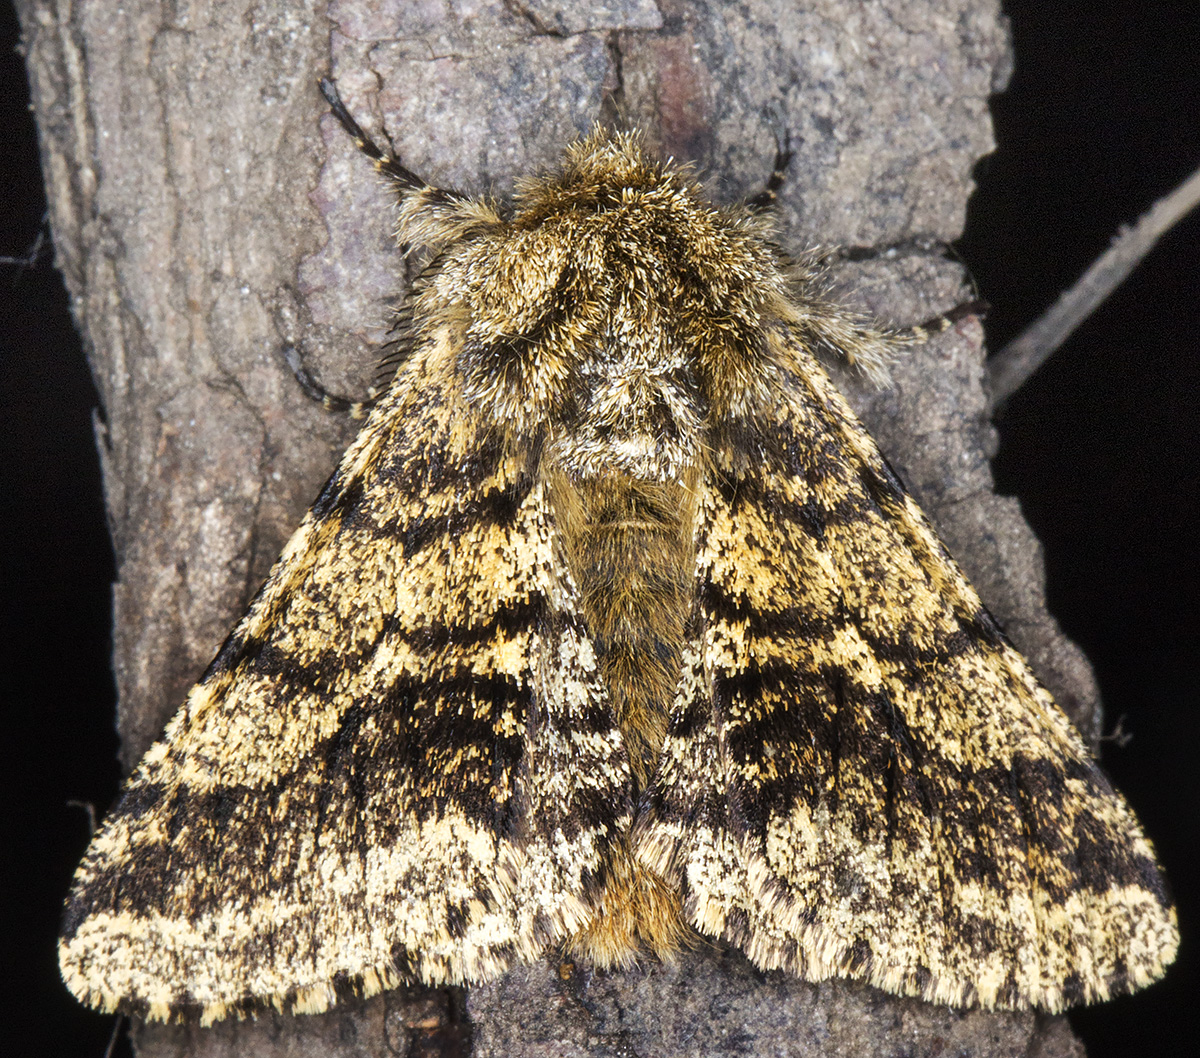 Brindled Beauty, Lycia hirtaria.  In the West Wickham Common light trap on 15 April 2015.